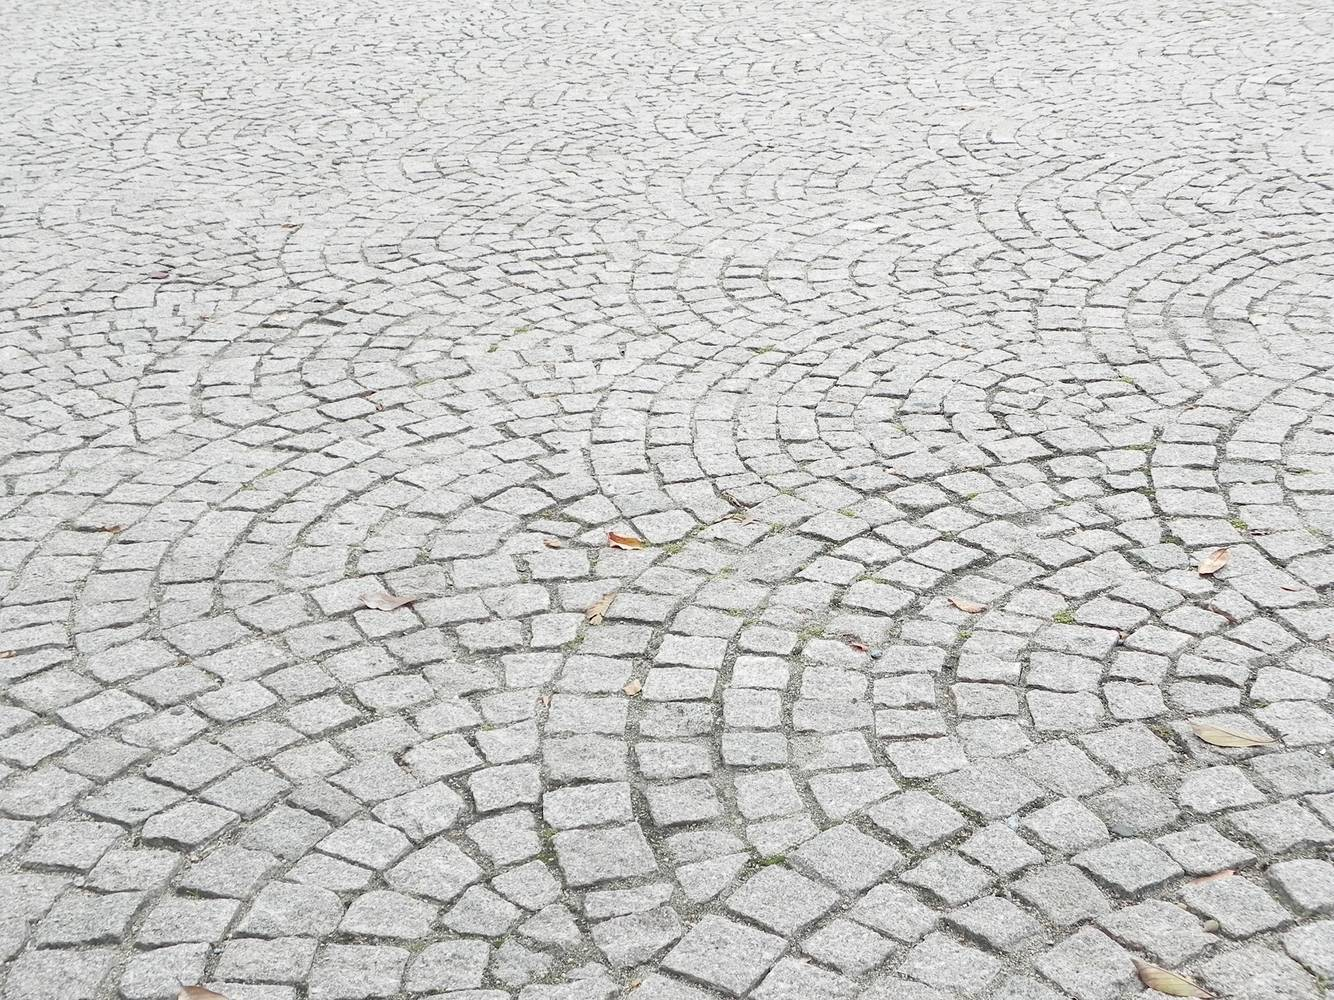 Paving Pattern by Anastasia O'melveny